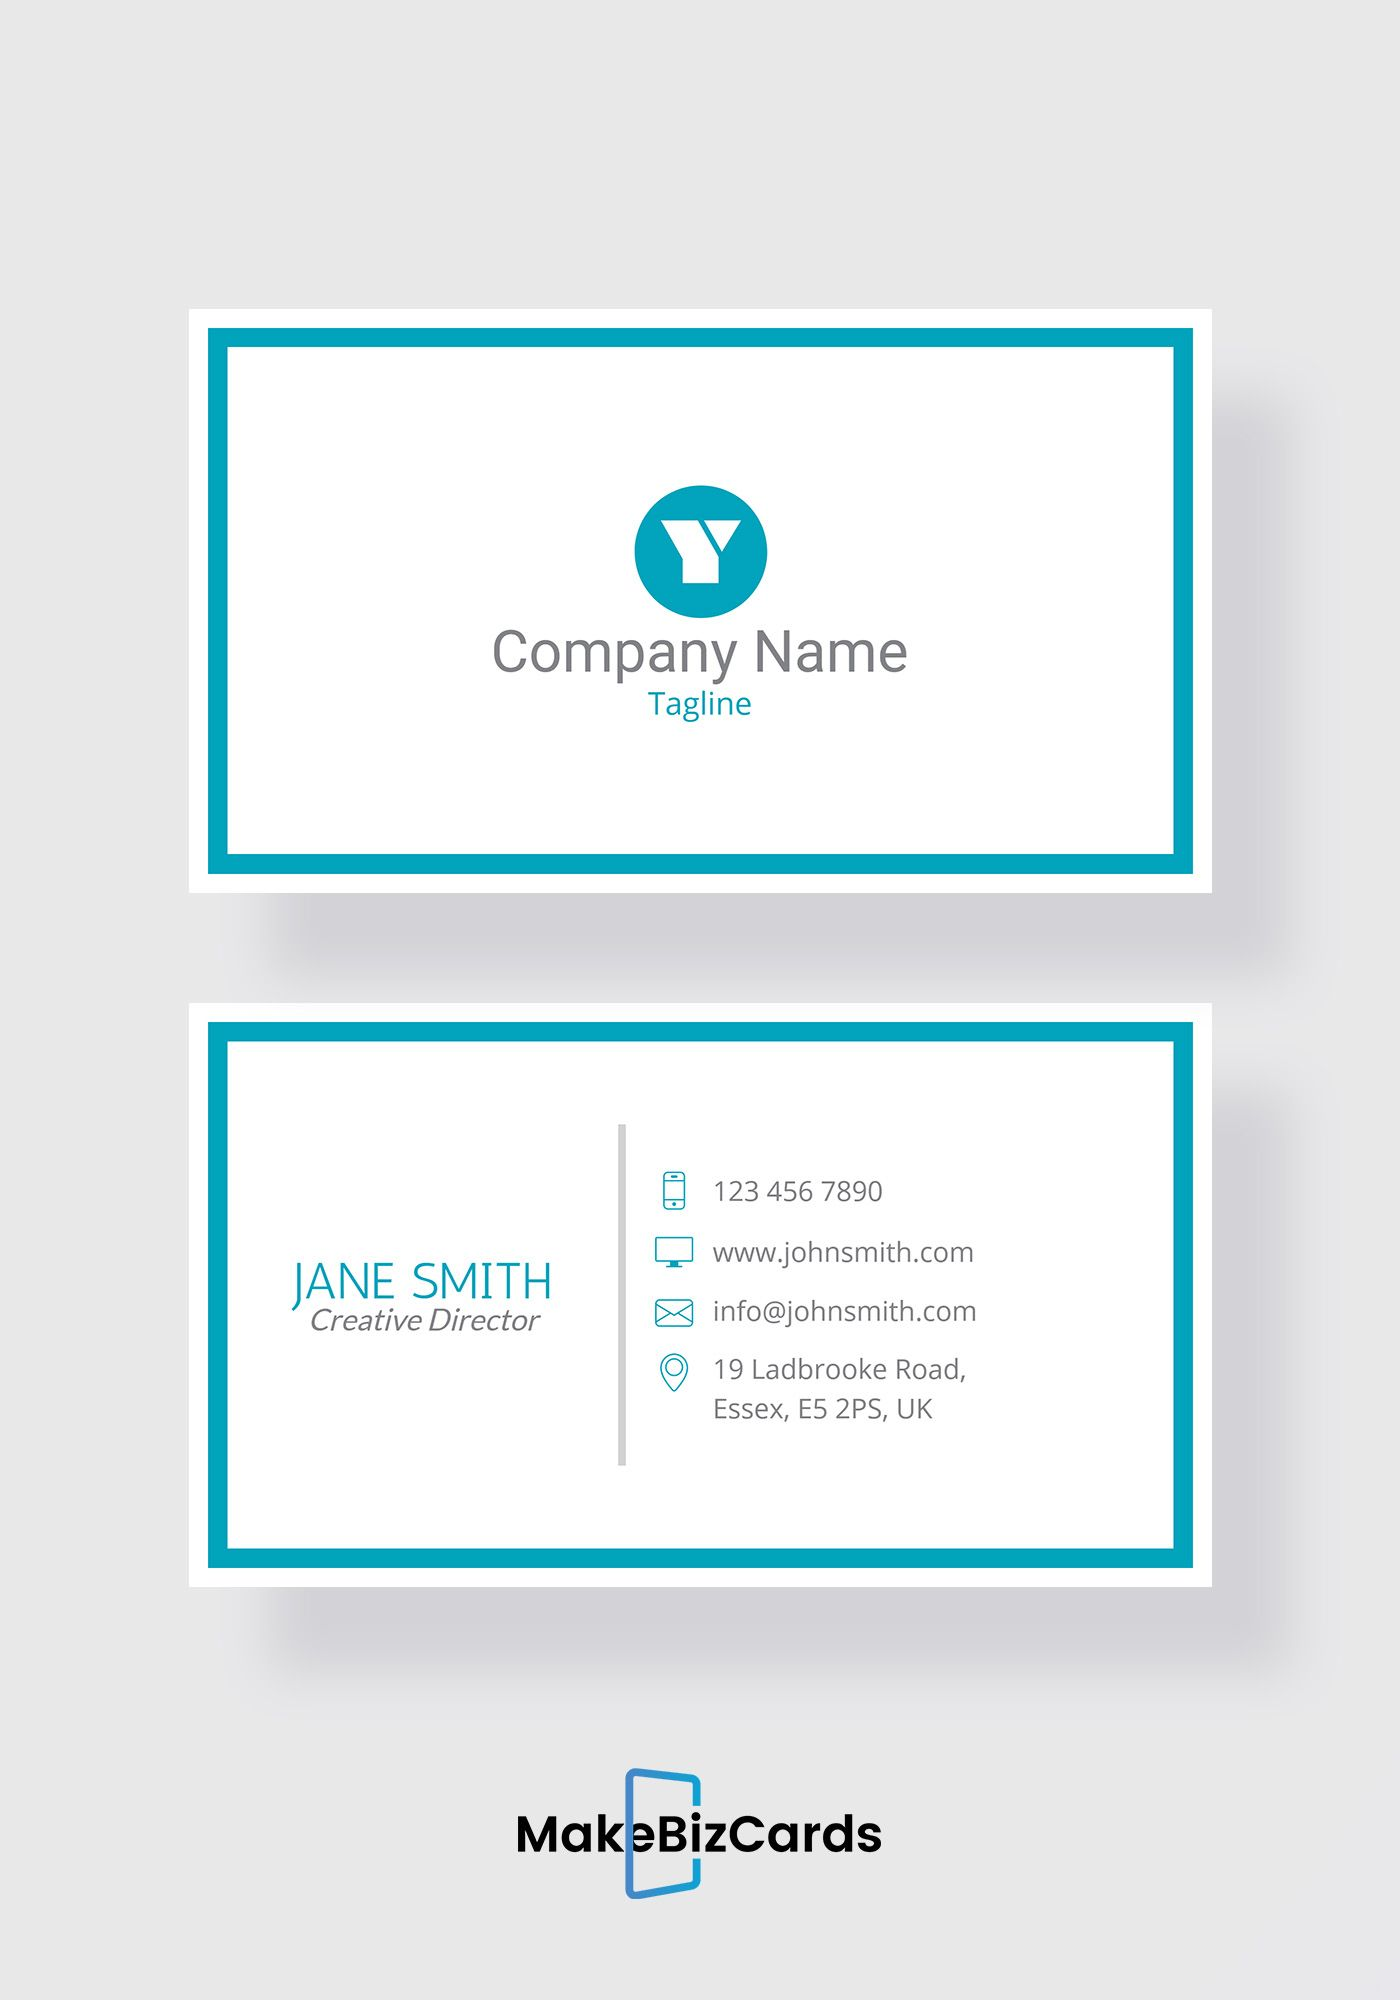 Free trendy ceo business card template businesscard design free trendy ceo business card template businesscard design colourmoves